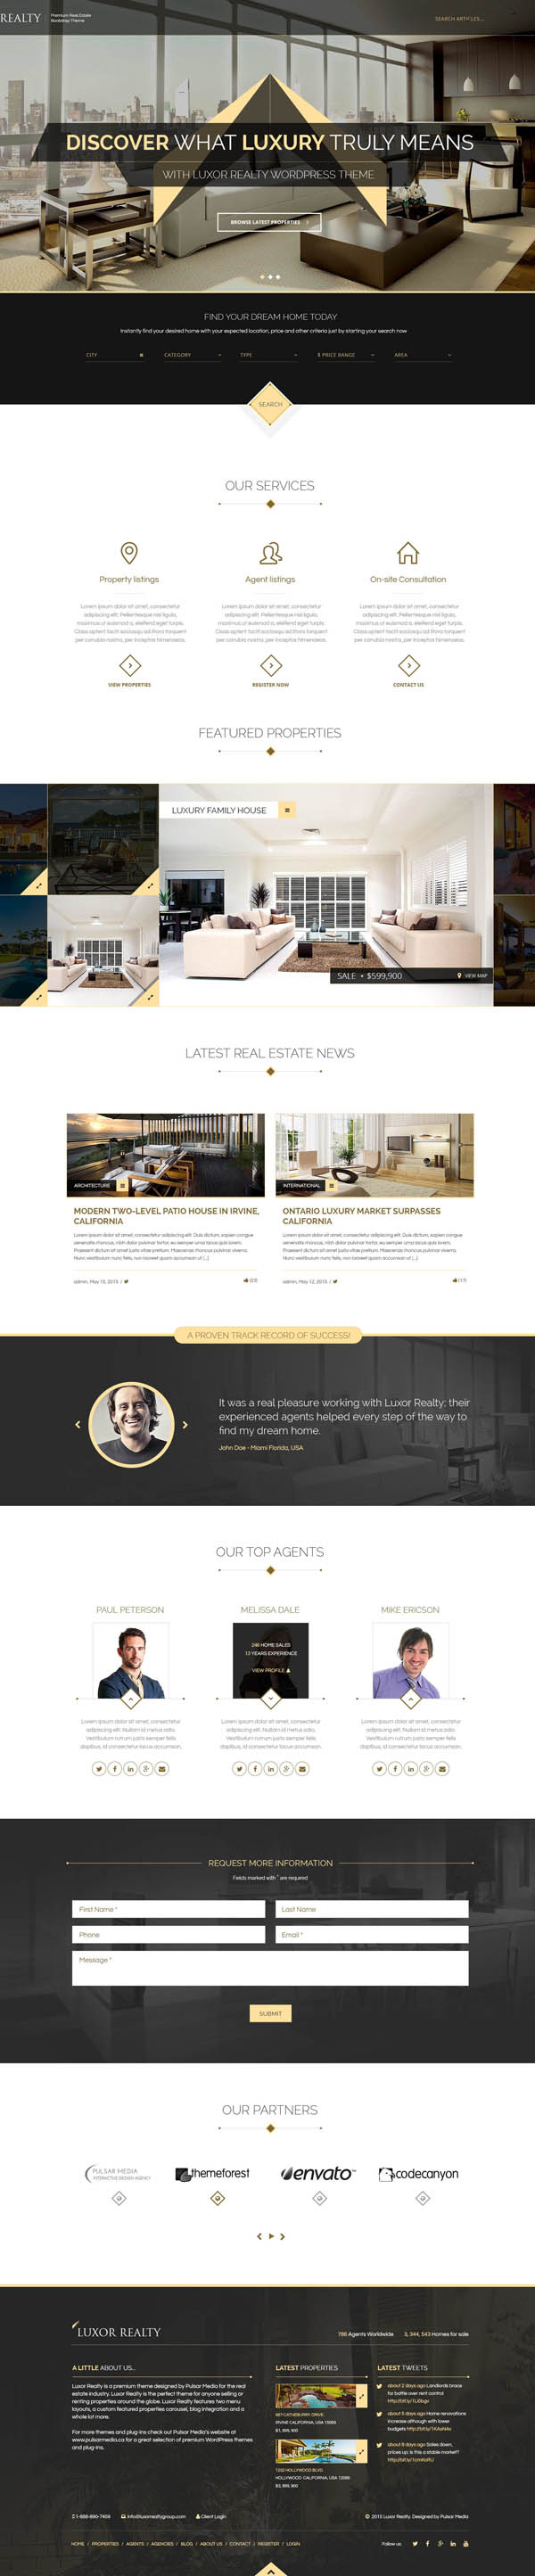 LUXOR - Responsive HTML5 Real Estate Template